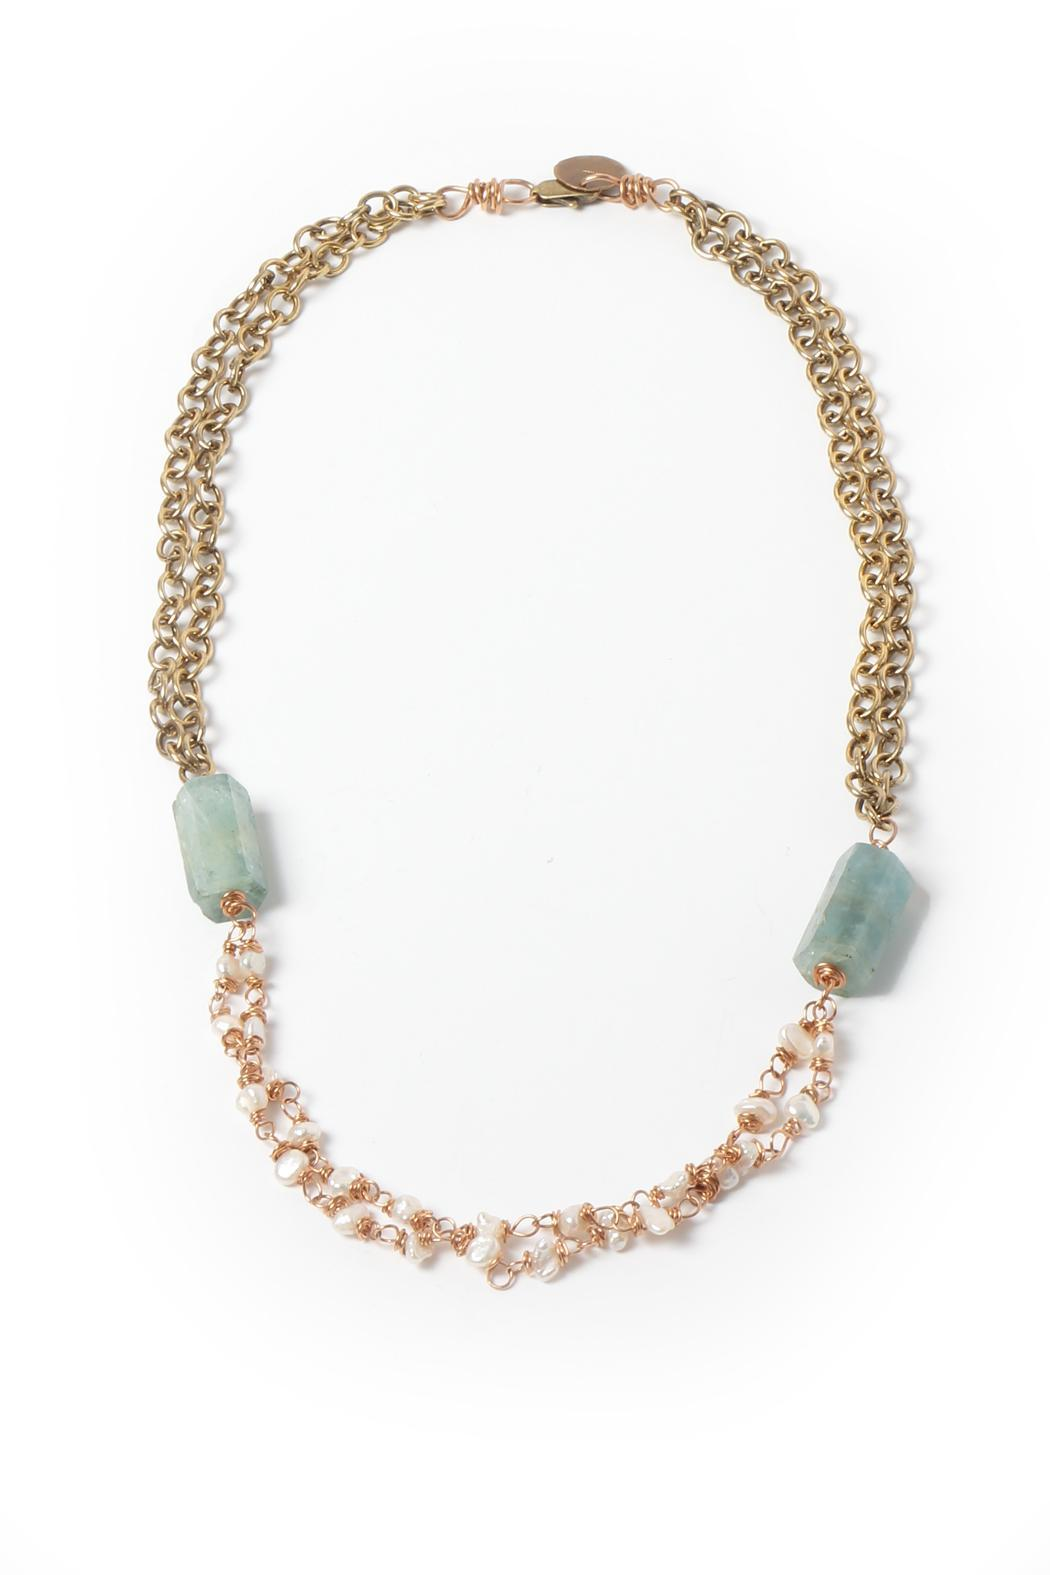 Cowgirl Chile Co. Jewelry Louvre Aquamarine Necklace - Main Image